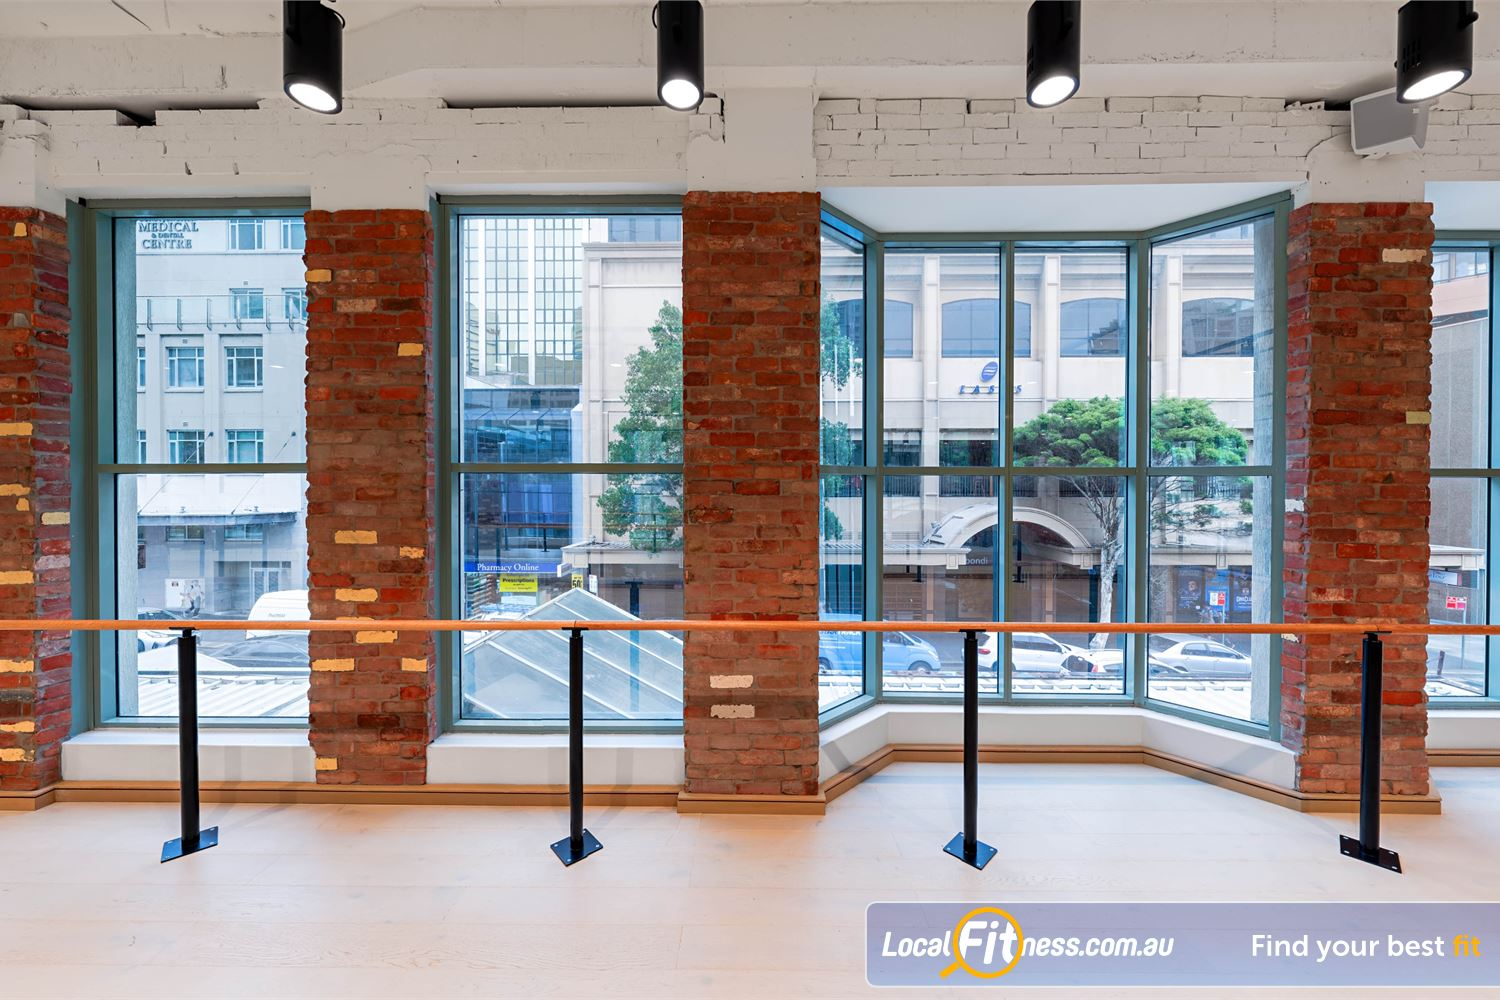 Fitness First Platinum Spring St Bondi Junction Our range of mind and body classes include Bondi Yoga and Pilates.